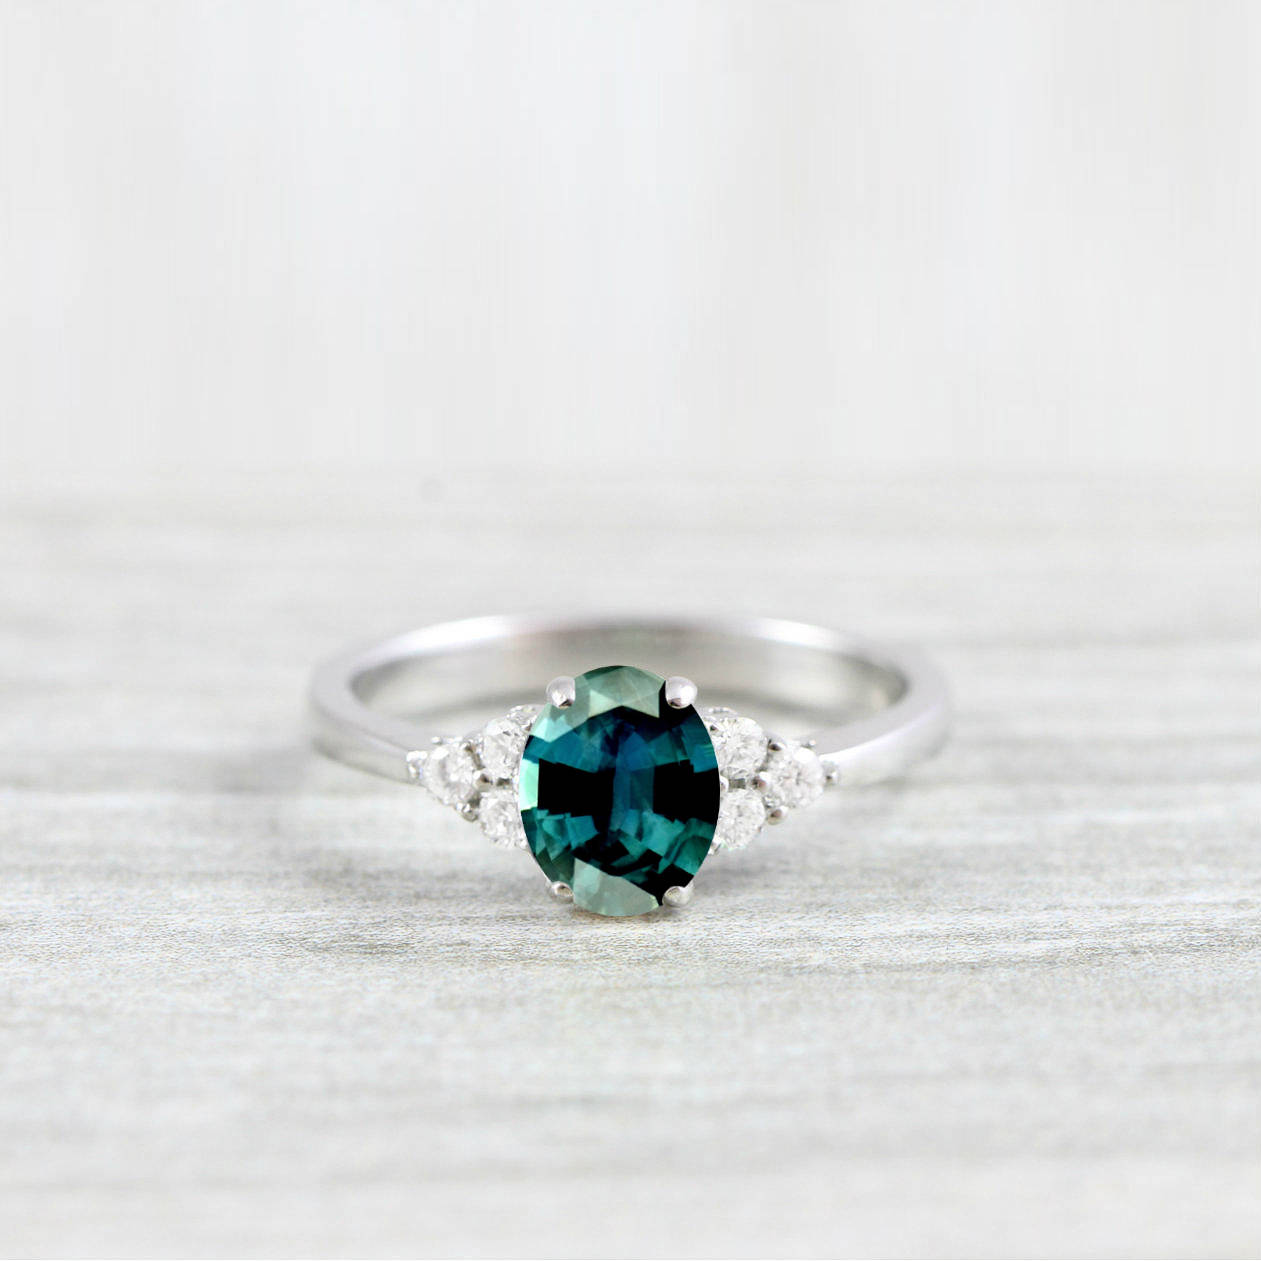 Teal Sapphire And Diamond Oval Engagement Ring In White Rose Yellow Gold Or Platinum For Her Handmade Ring Uk Aardvark Jewellery